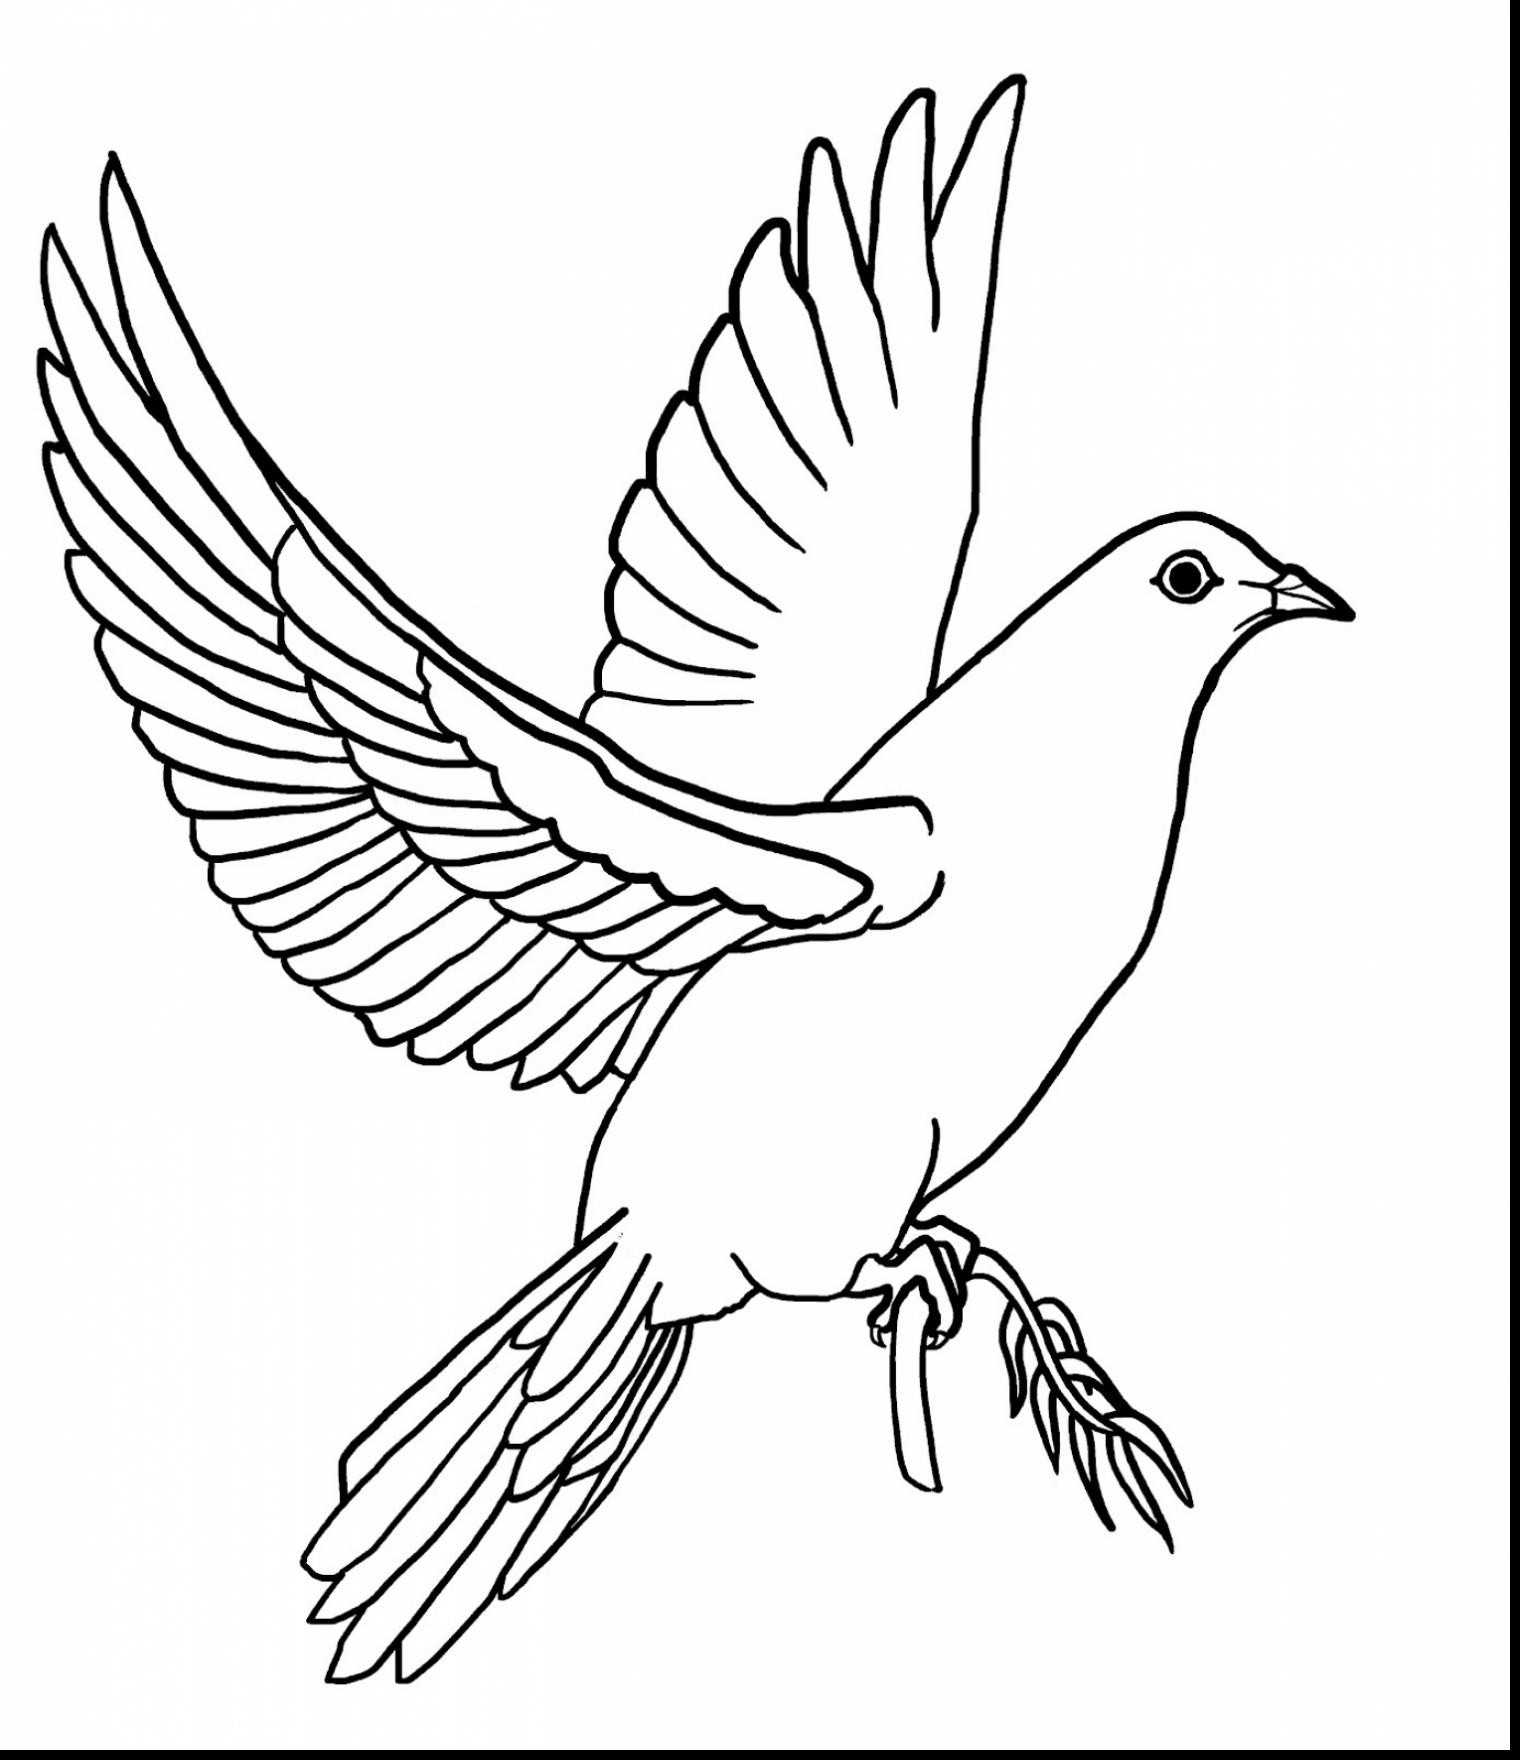 peace dove coloring page peace dove coloring sheet by koolkat39s art bin tpt peace page coloring dove